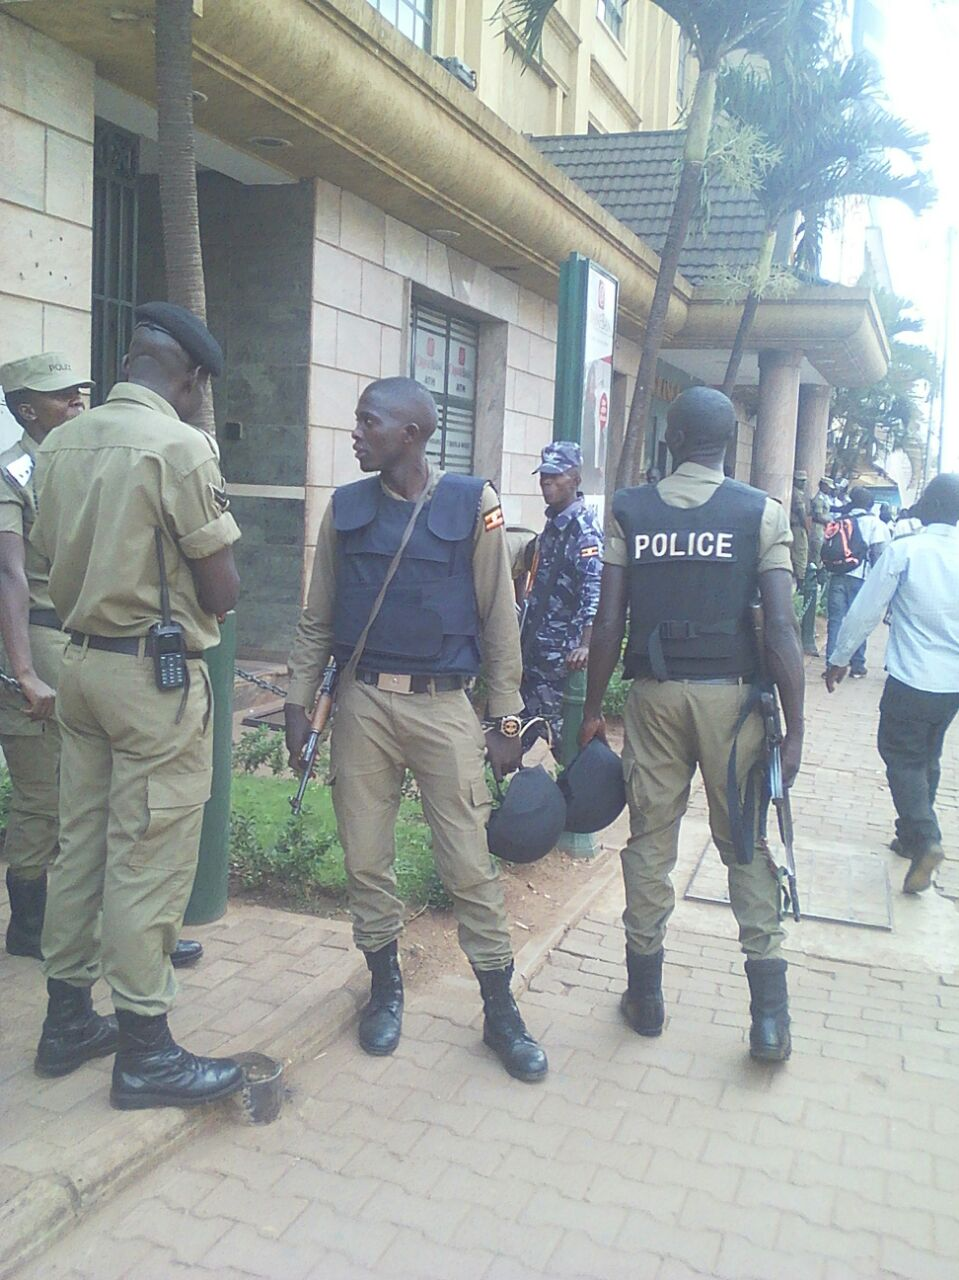 DEPLOYED: Policemen stand guard outside Crane Bank.